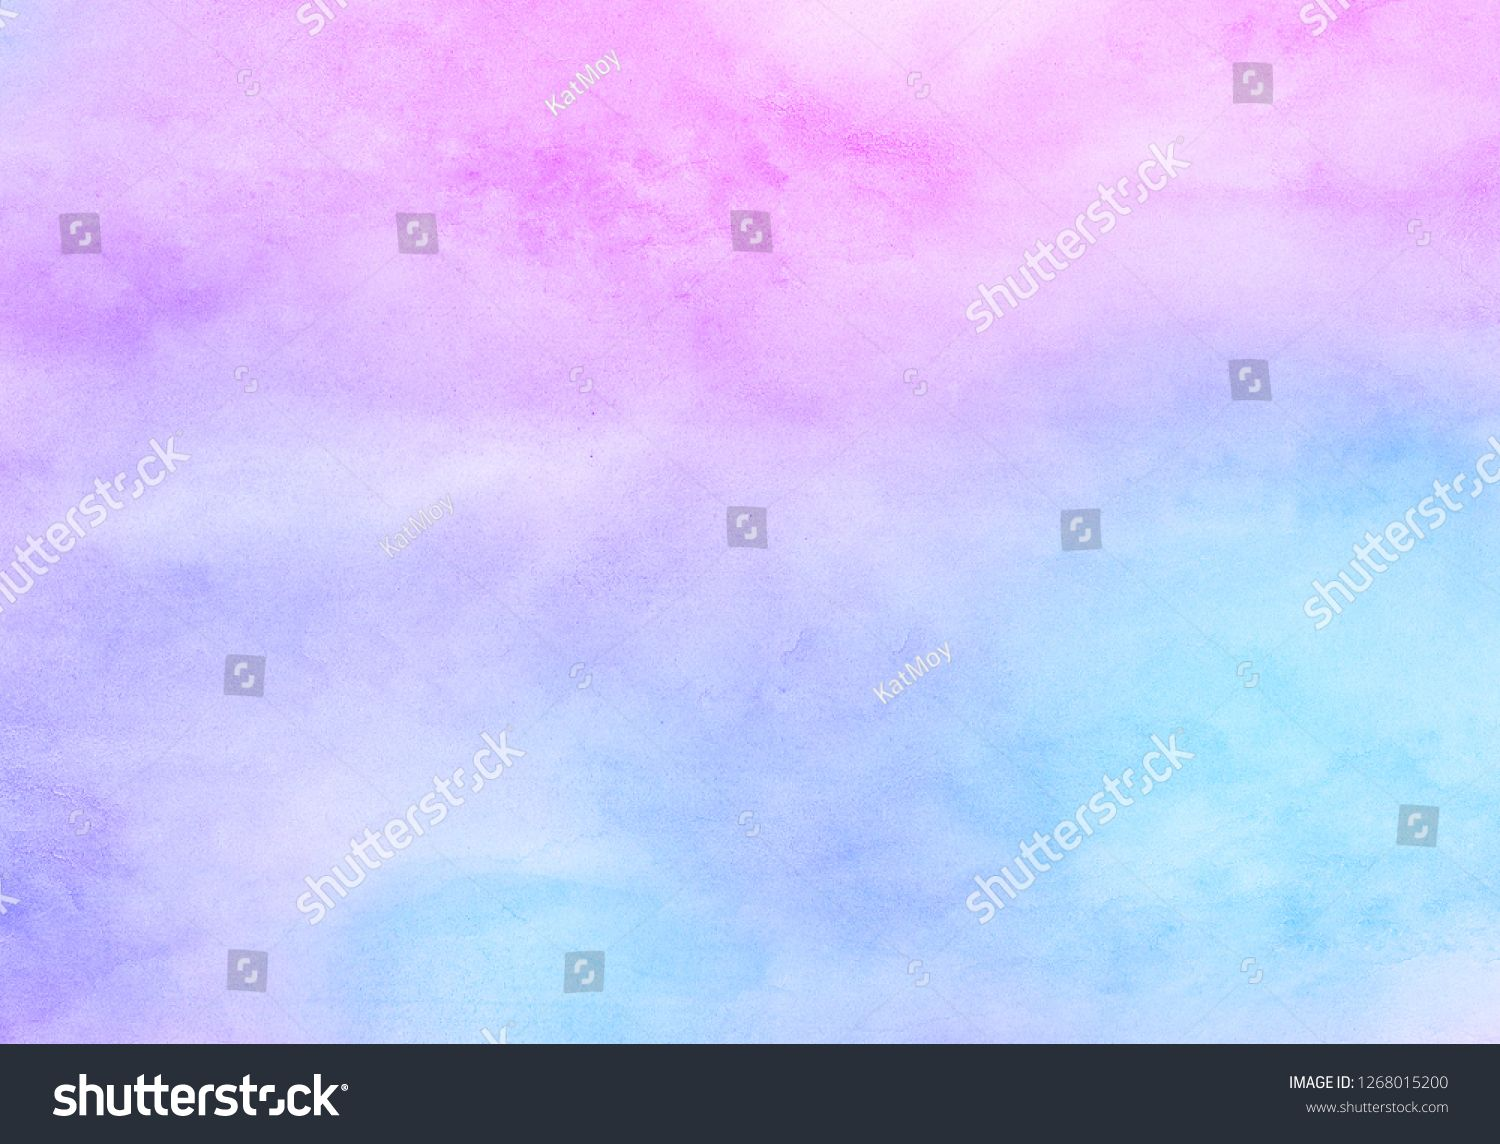 Fantasy Light Blue Purple And Pink Shades Watercolor Background